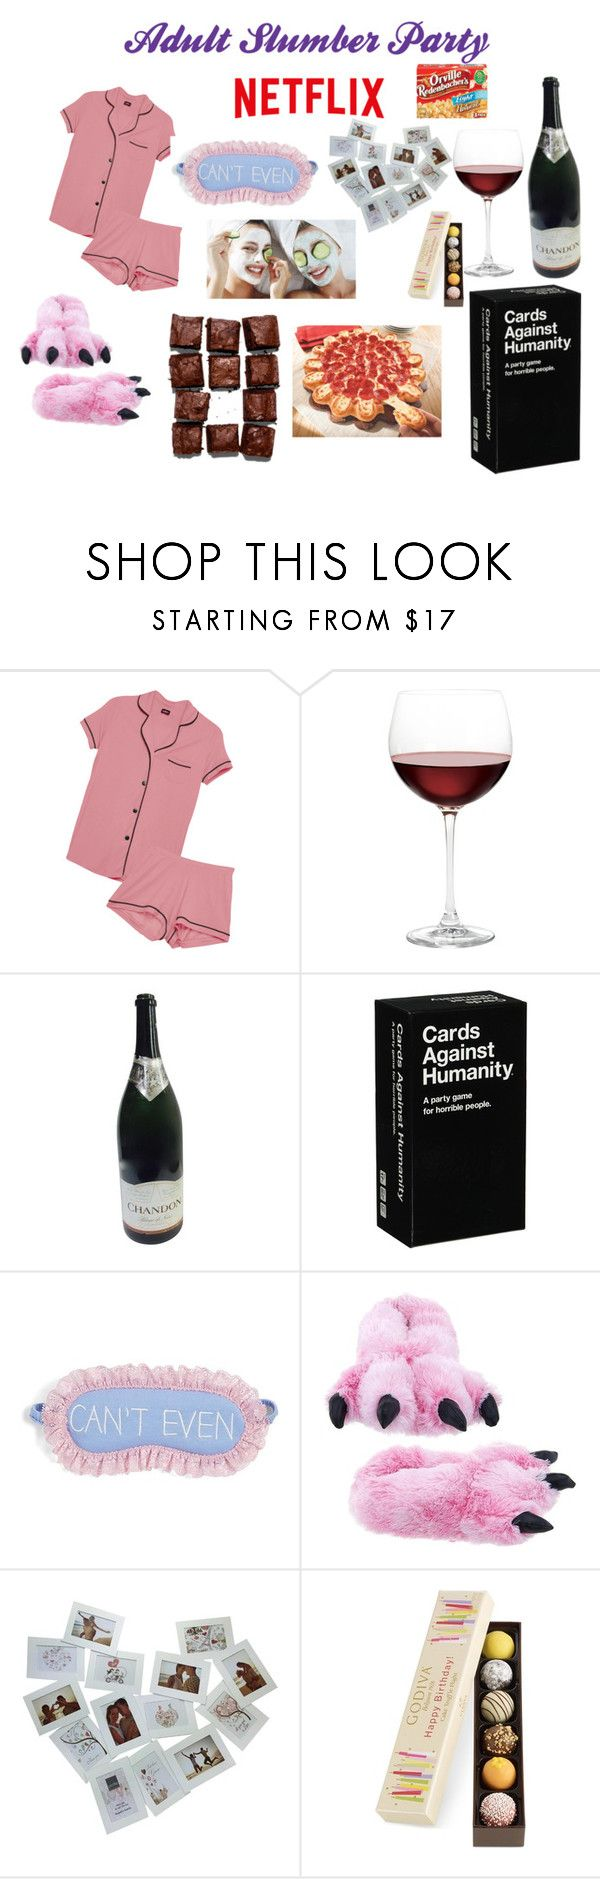 """Adult Slumber Party"" by buttercreamkisses ❤ liked on Polyvore featuring Cosabella, Nordstrom, P.J. Salvage and Godiva"